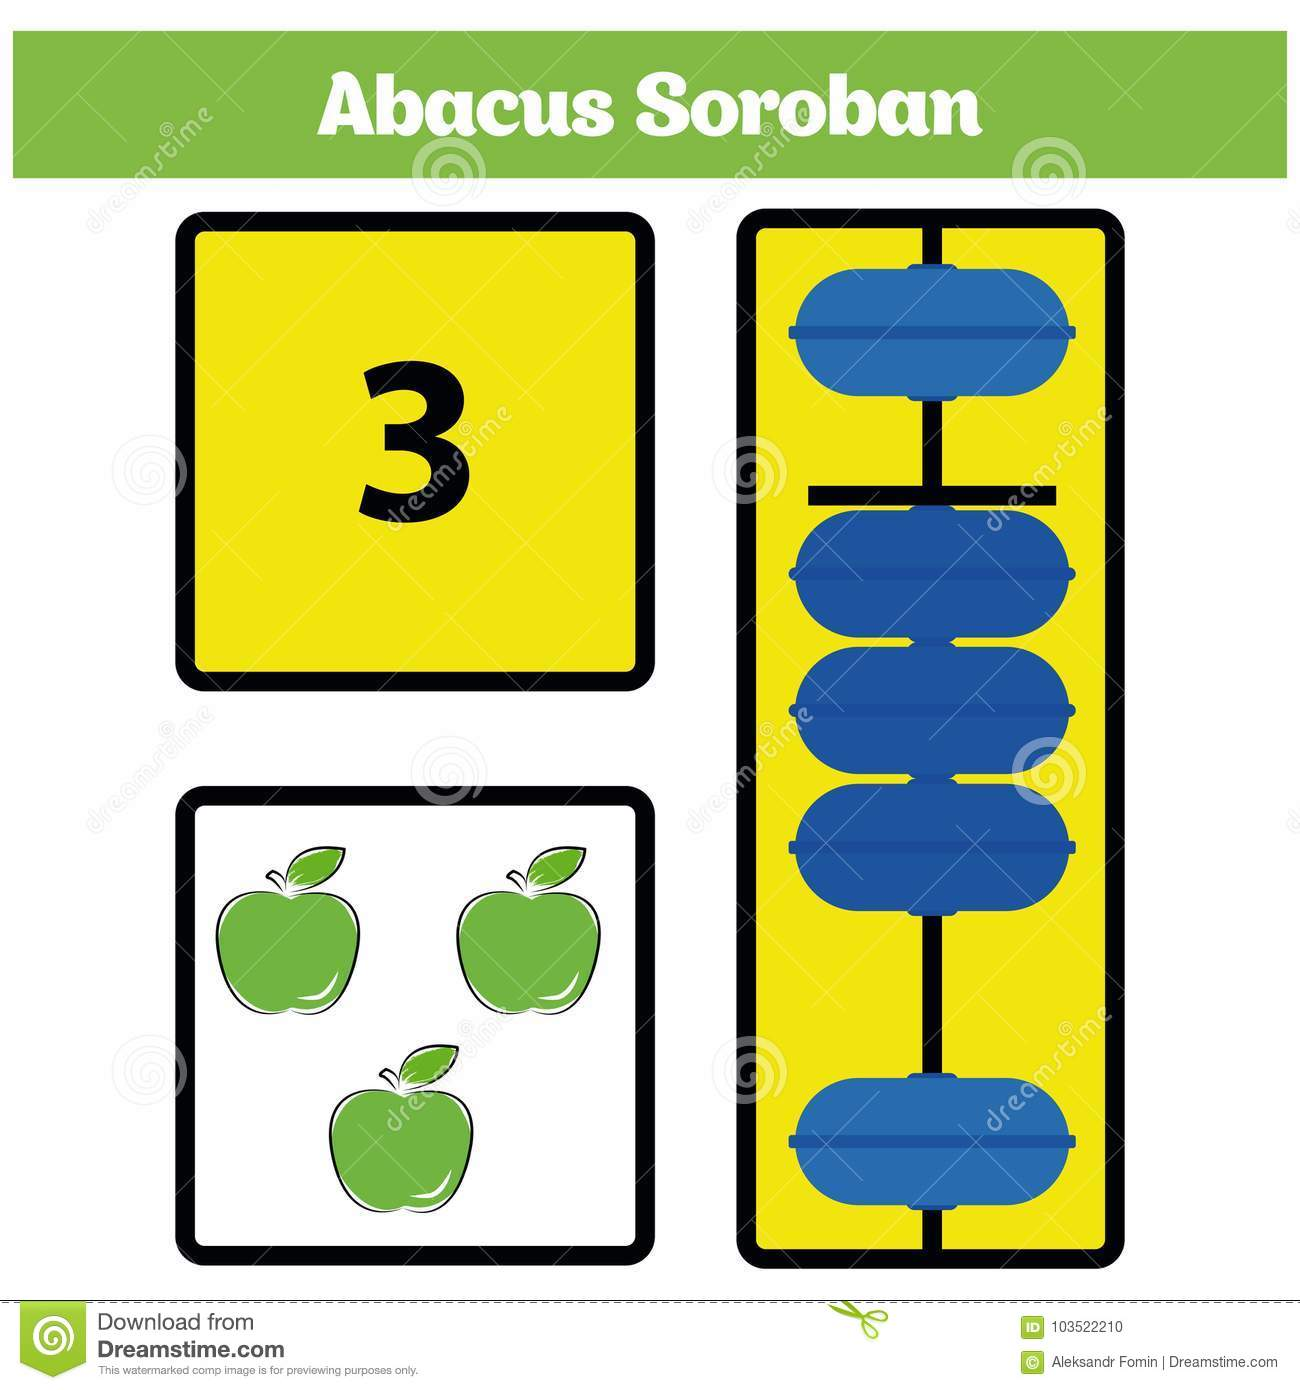 abacus soroban kids learn numbers with abacus math worksheet for  abacus soroban kids learn numbers with abacus math worksheet for children